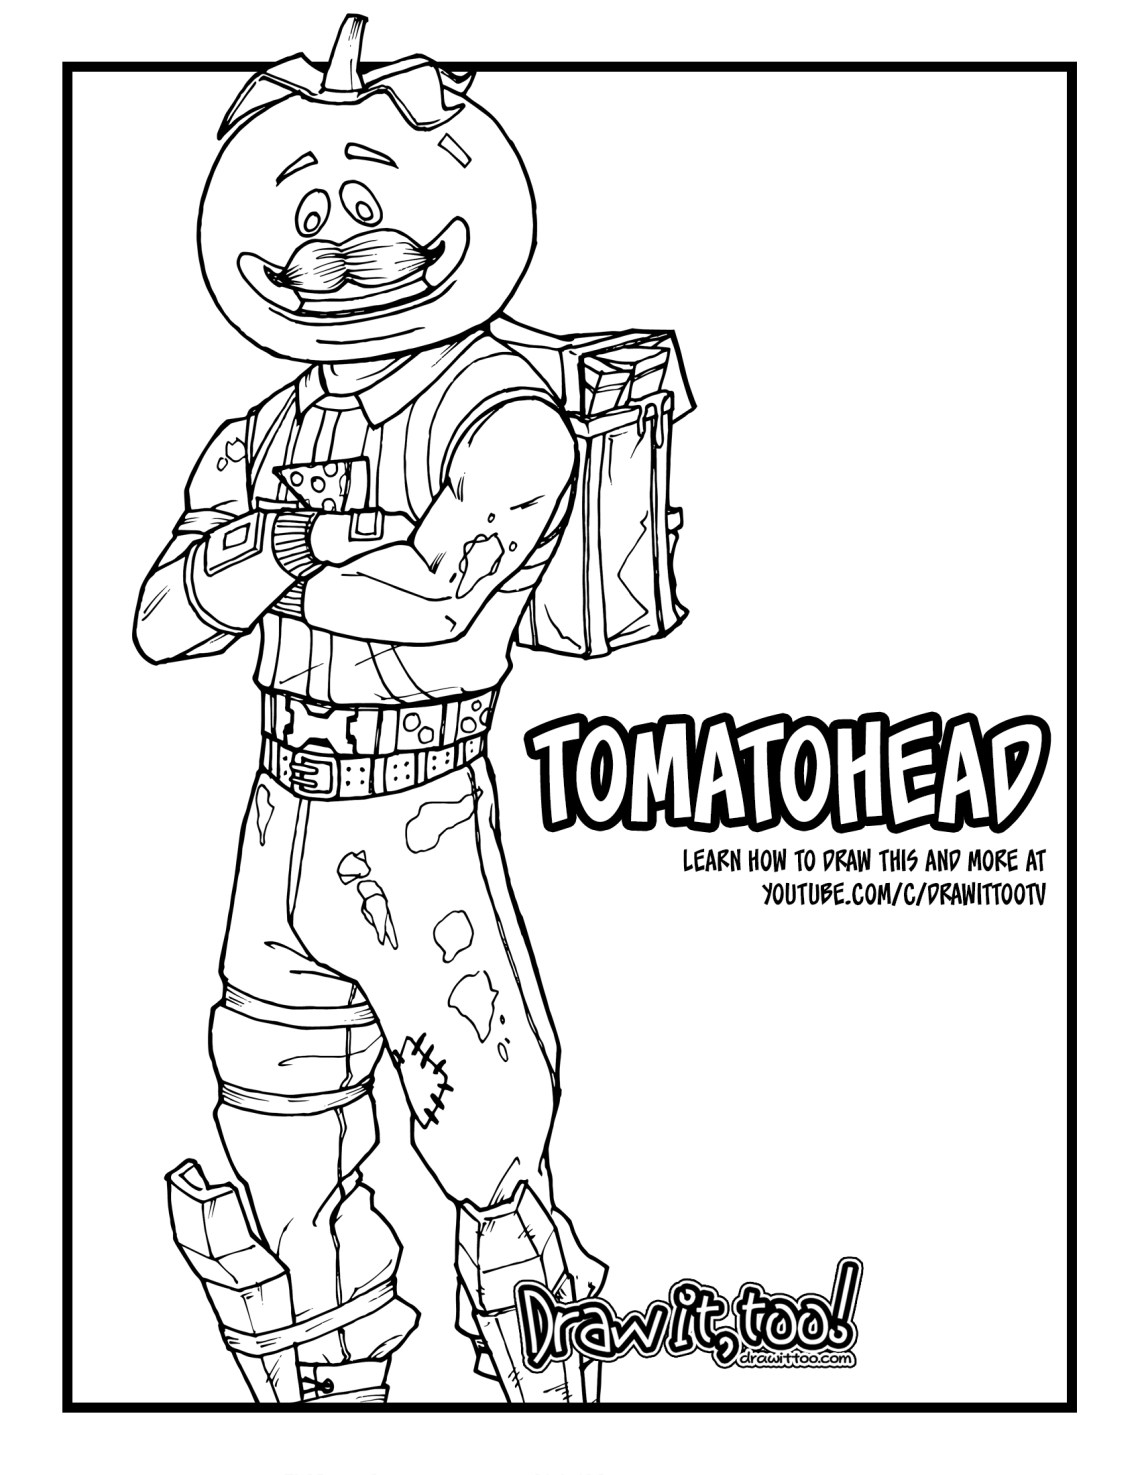 How to Draw TOMATOHEAD Fortnite